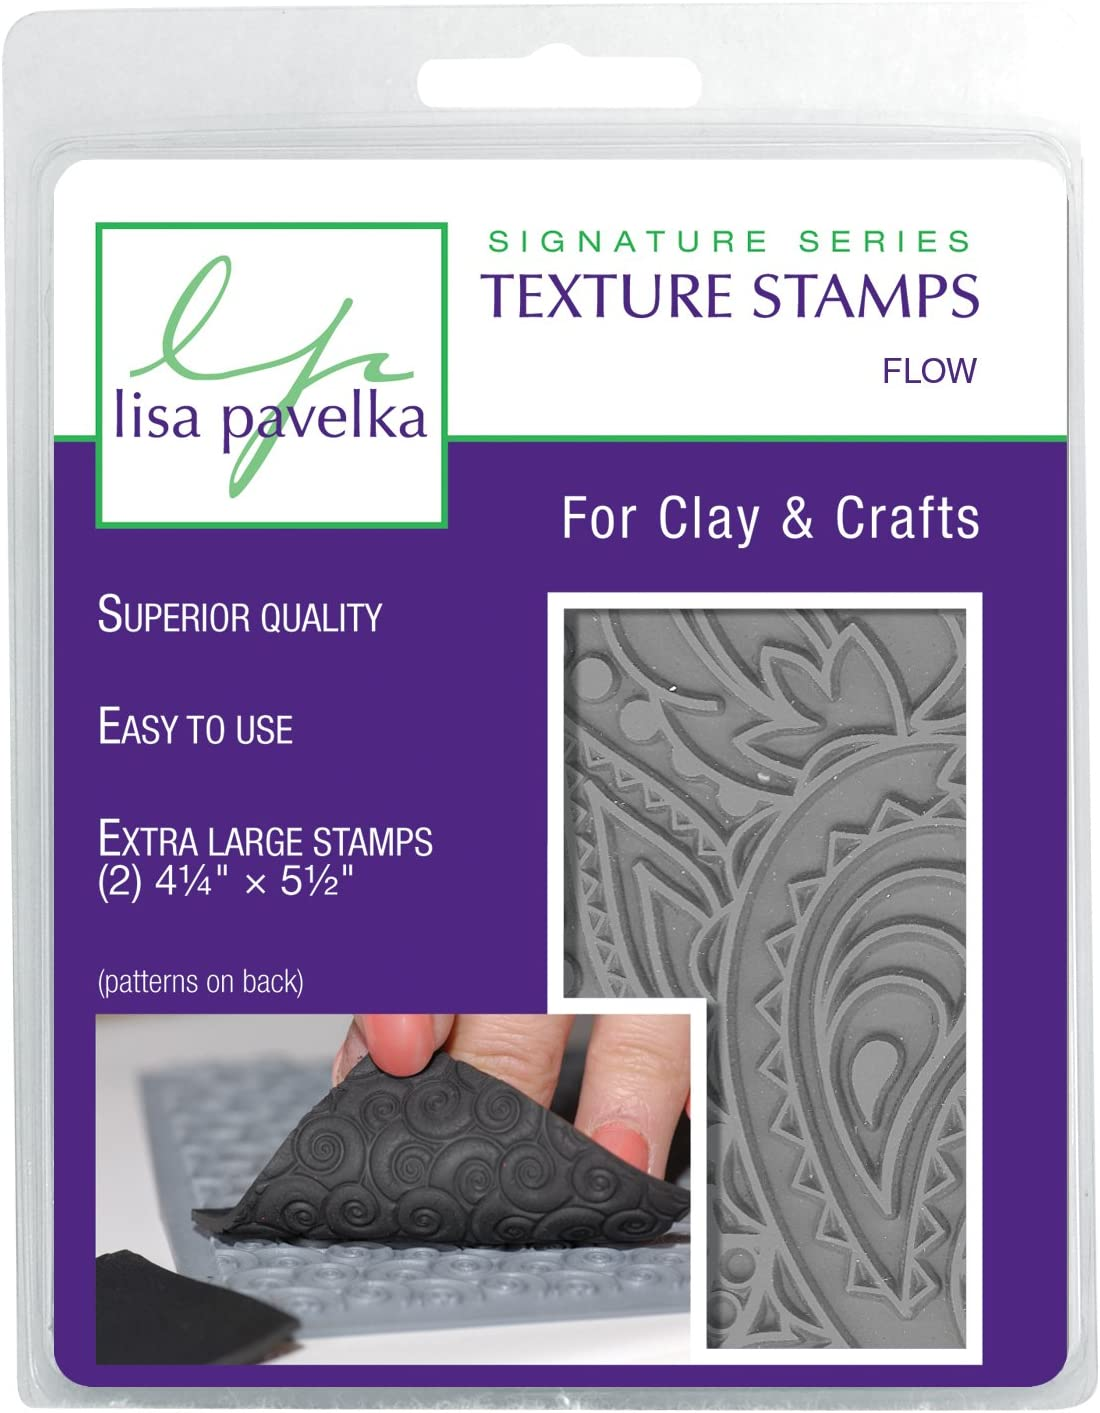 Paisley Great Create Lisa Pavelka Individual Texture Stamp 4.25 x 5.5-inch